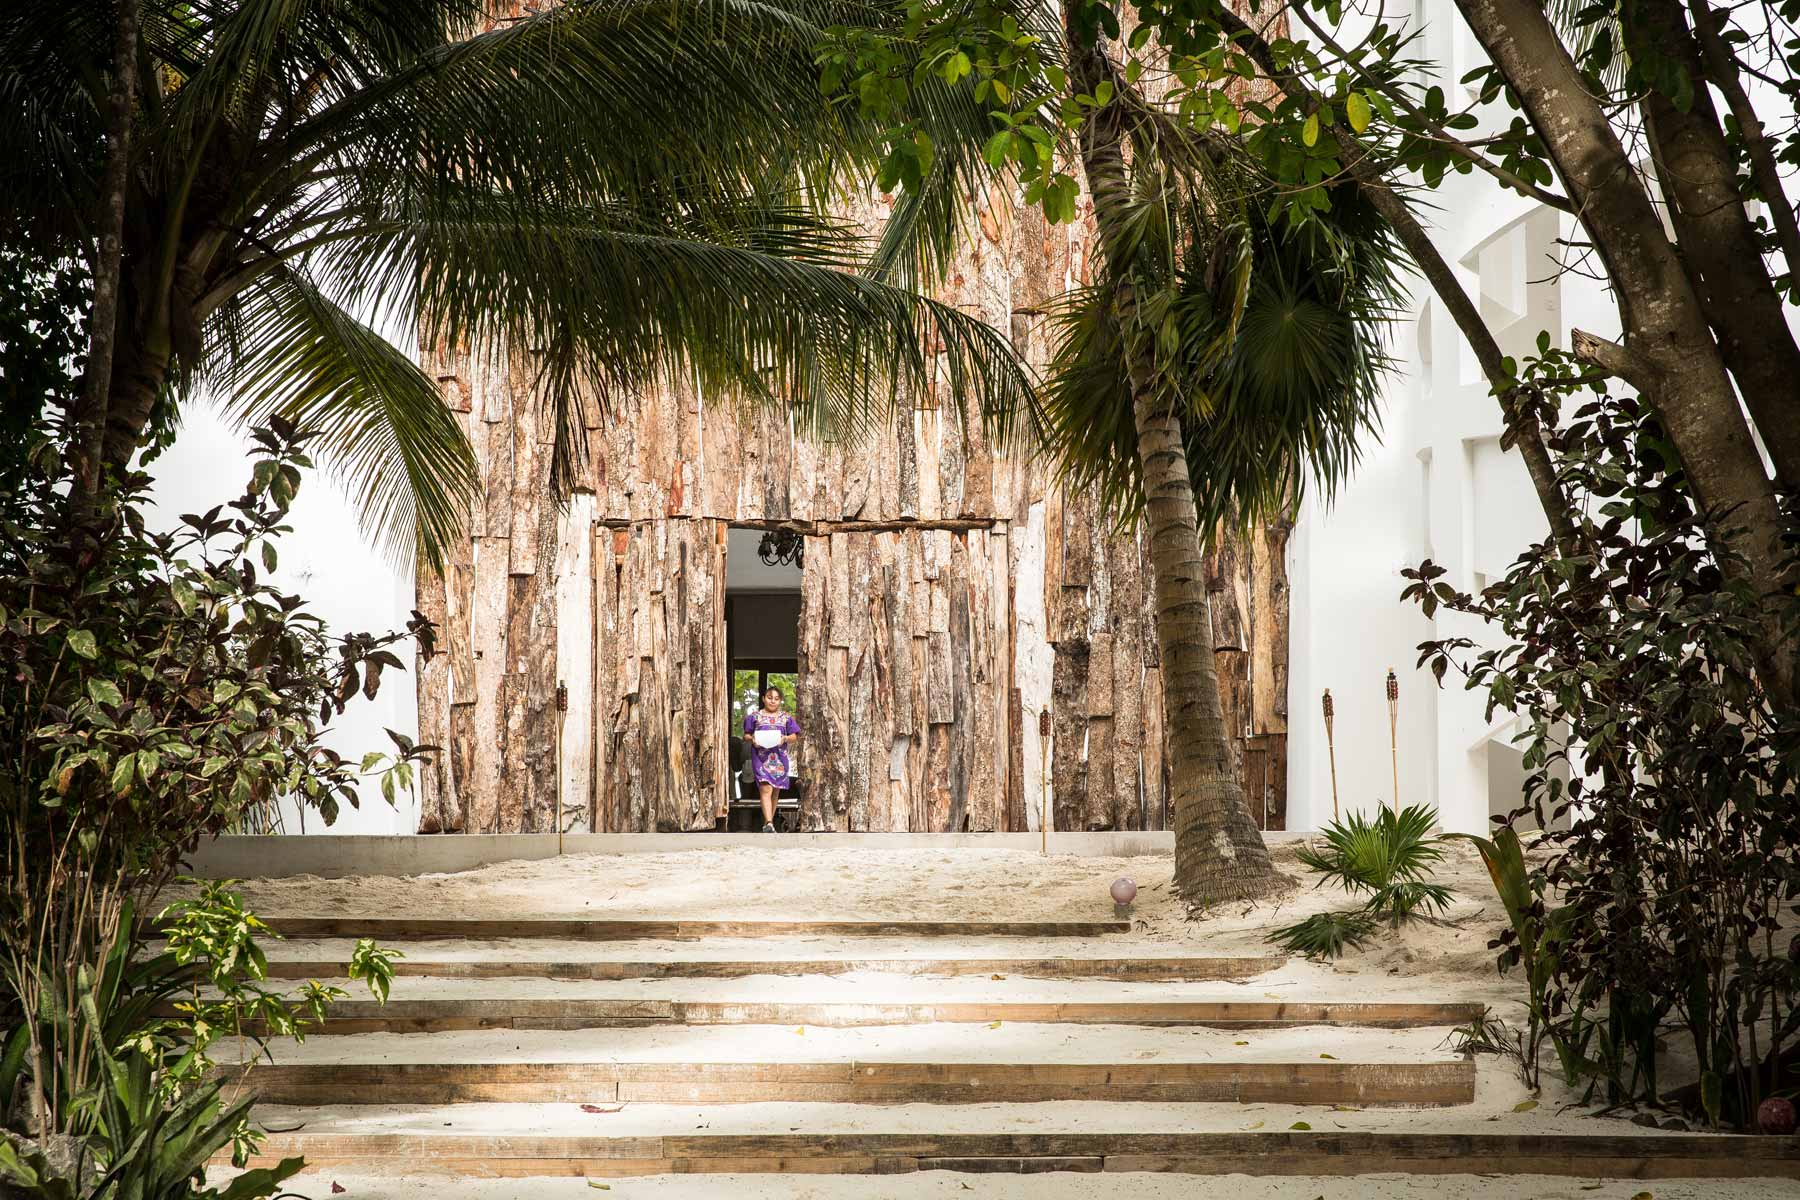 Pablo Escobar's luxury resort Tulum-